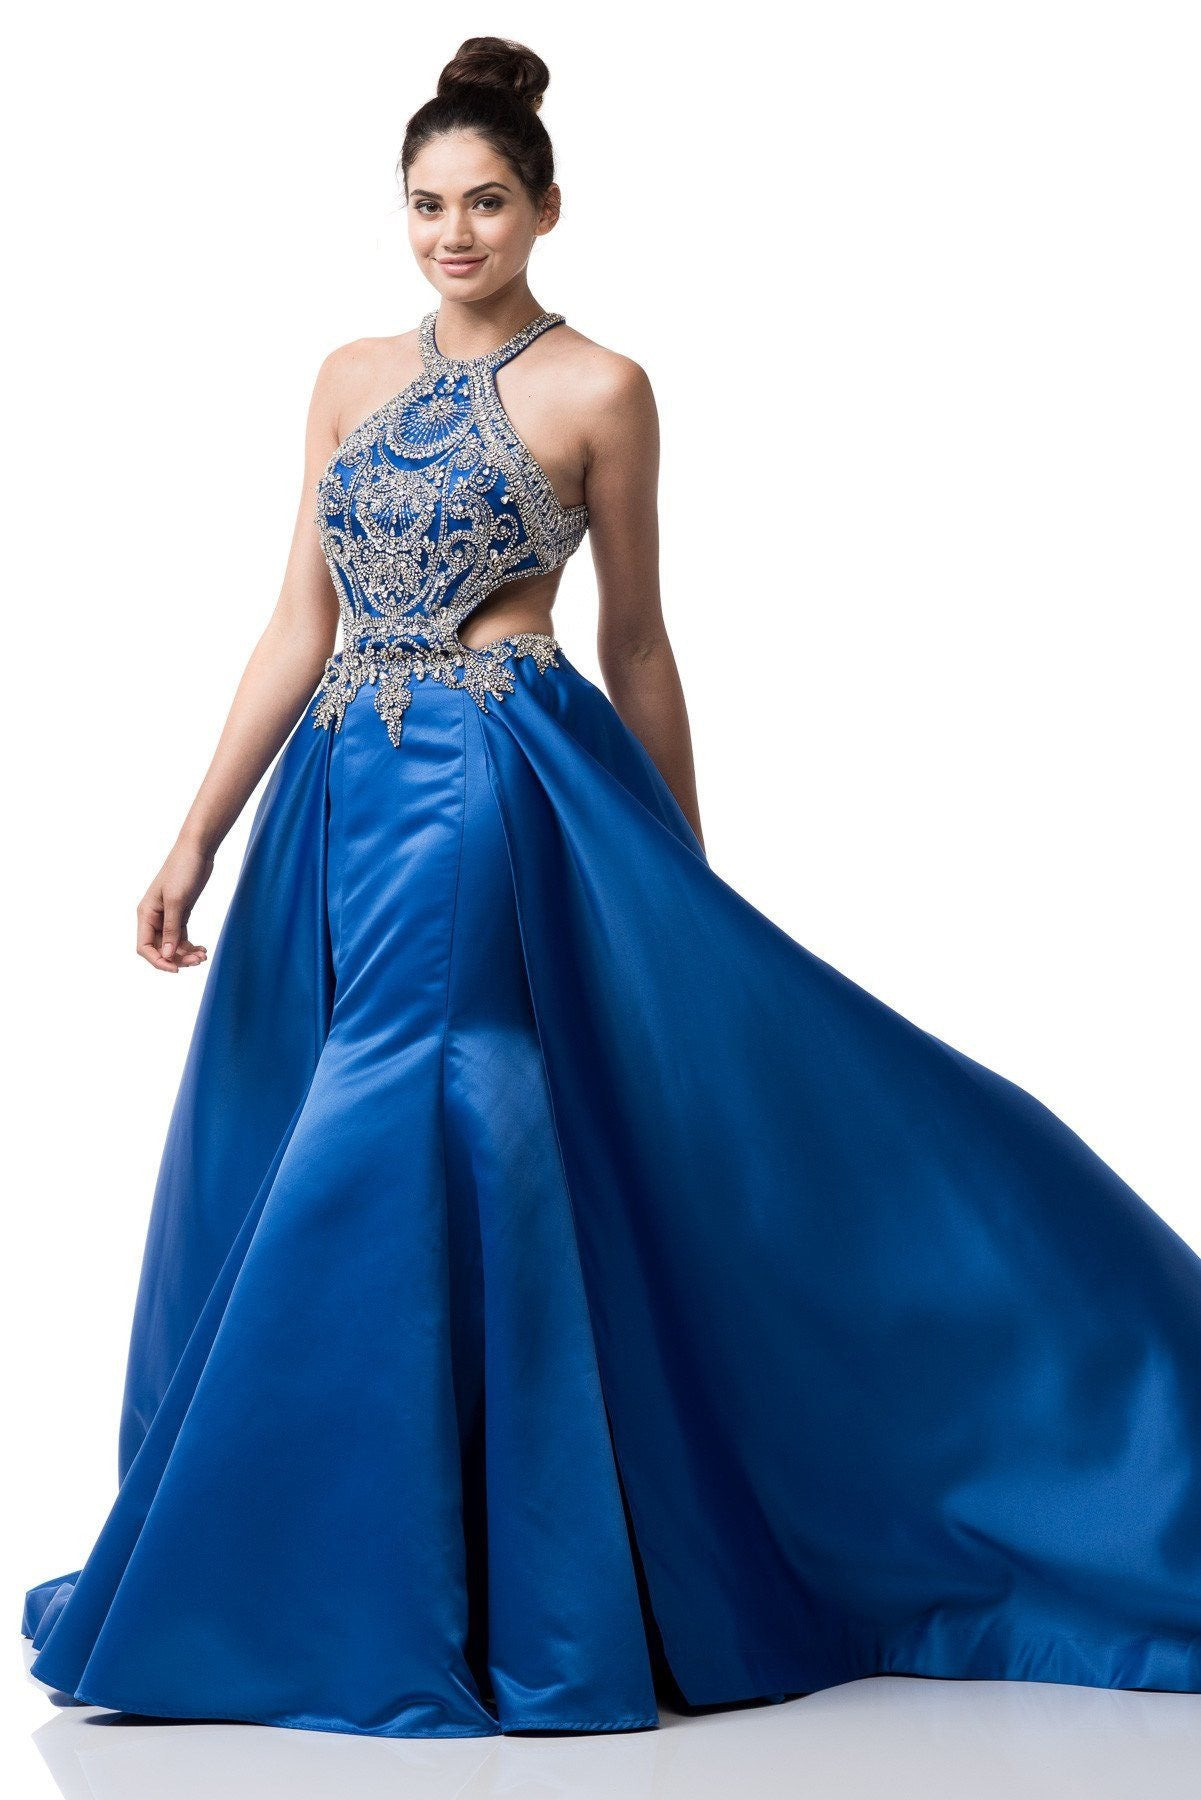 Fashion week Blue Unique prom dresses for lady